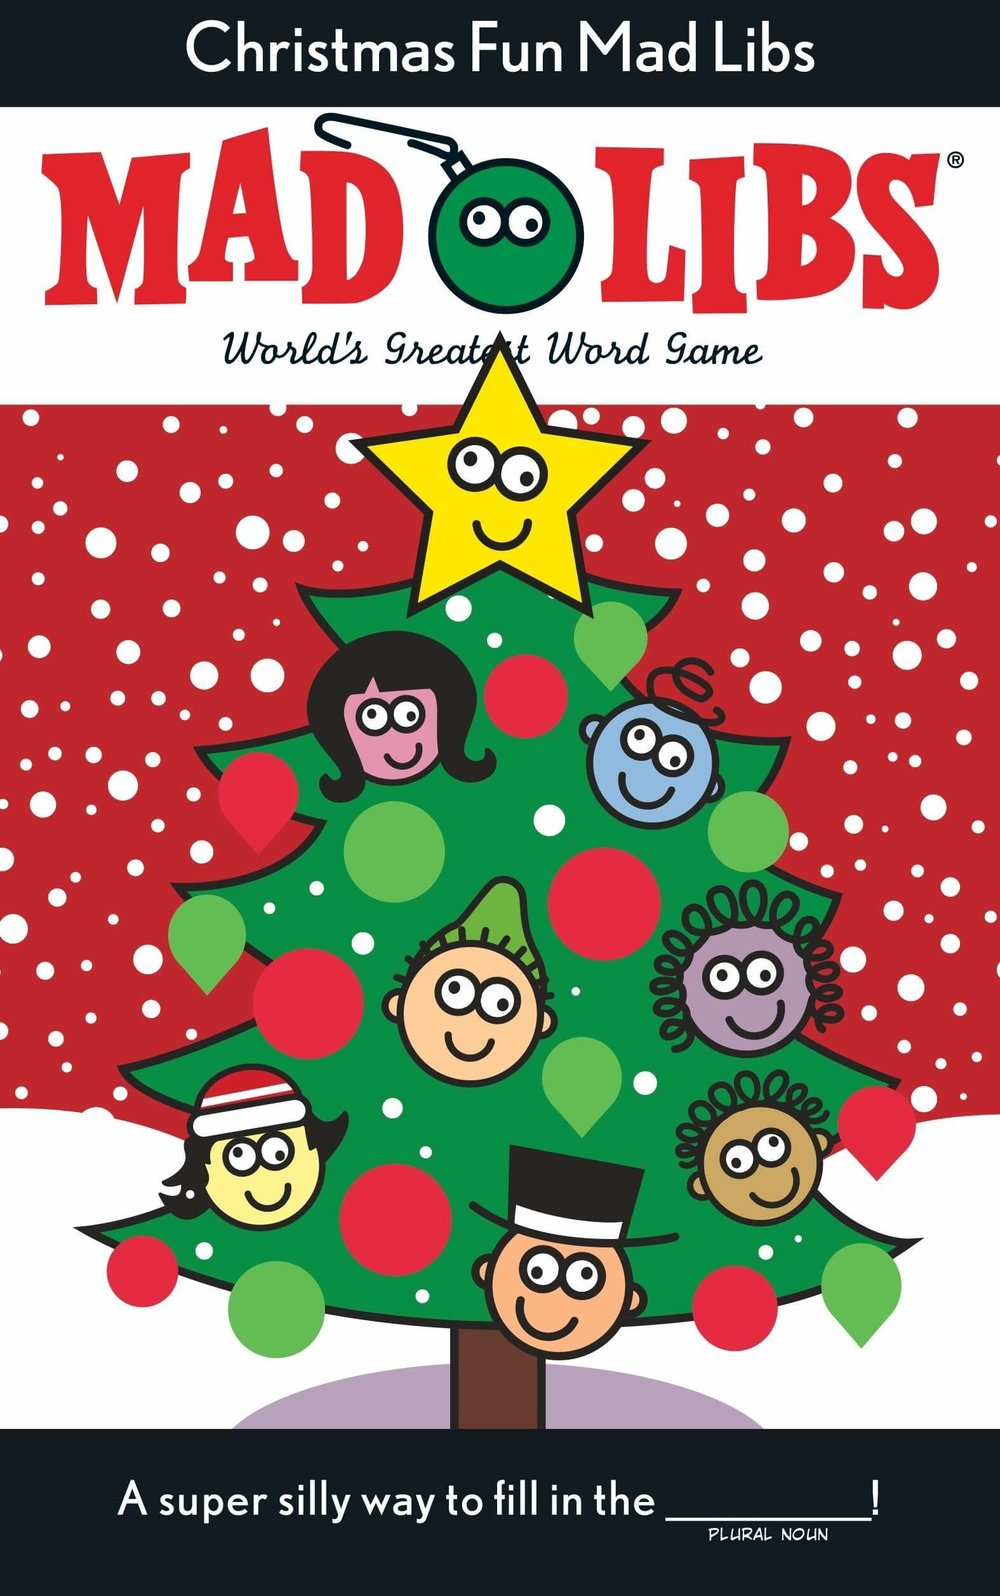 Christmas Fun Mad Libs Deluxe Stocking Stuffer Edition Paperback by Roger Price